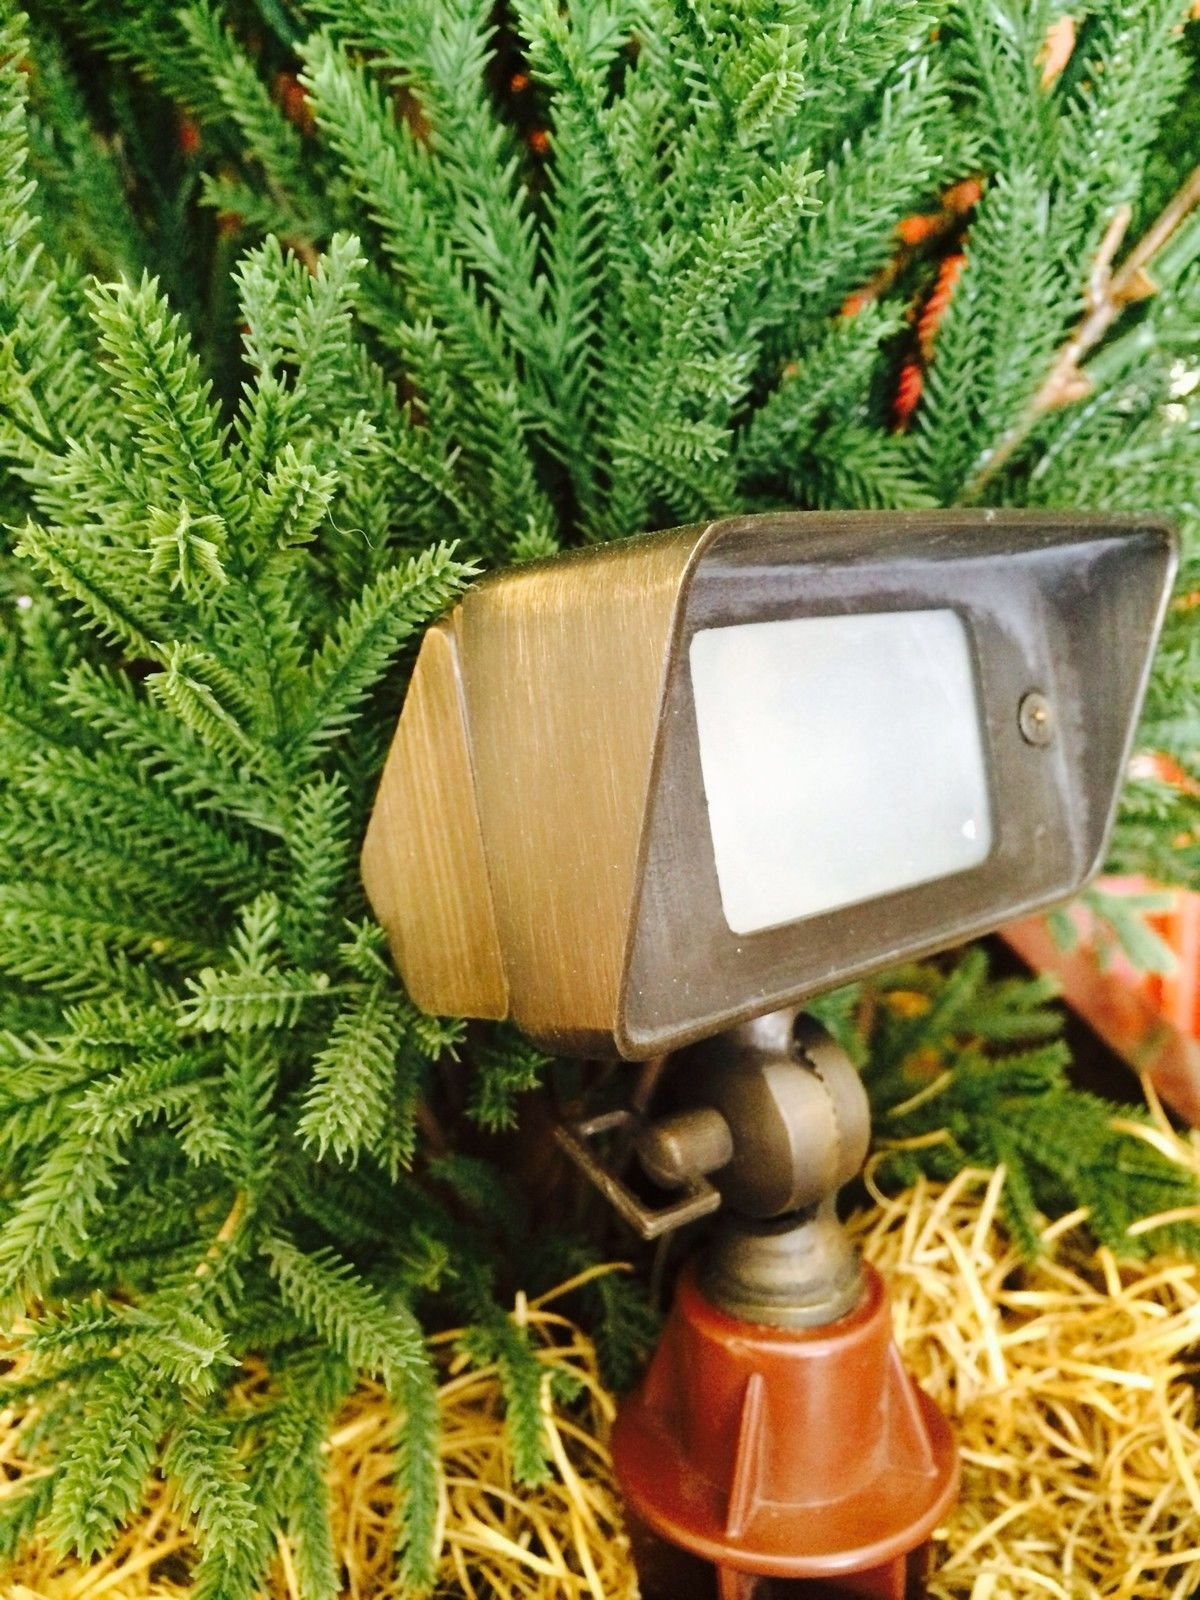 Pinnacle Lights Solid Brass Sculptor Wall Wash/Flood Light By LED Low Voltage Outdoor Landscape Lighting by Pinnacle Lights